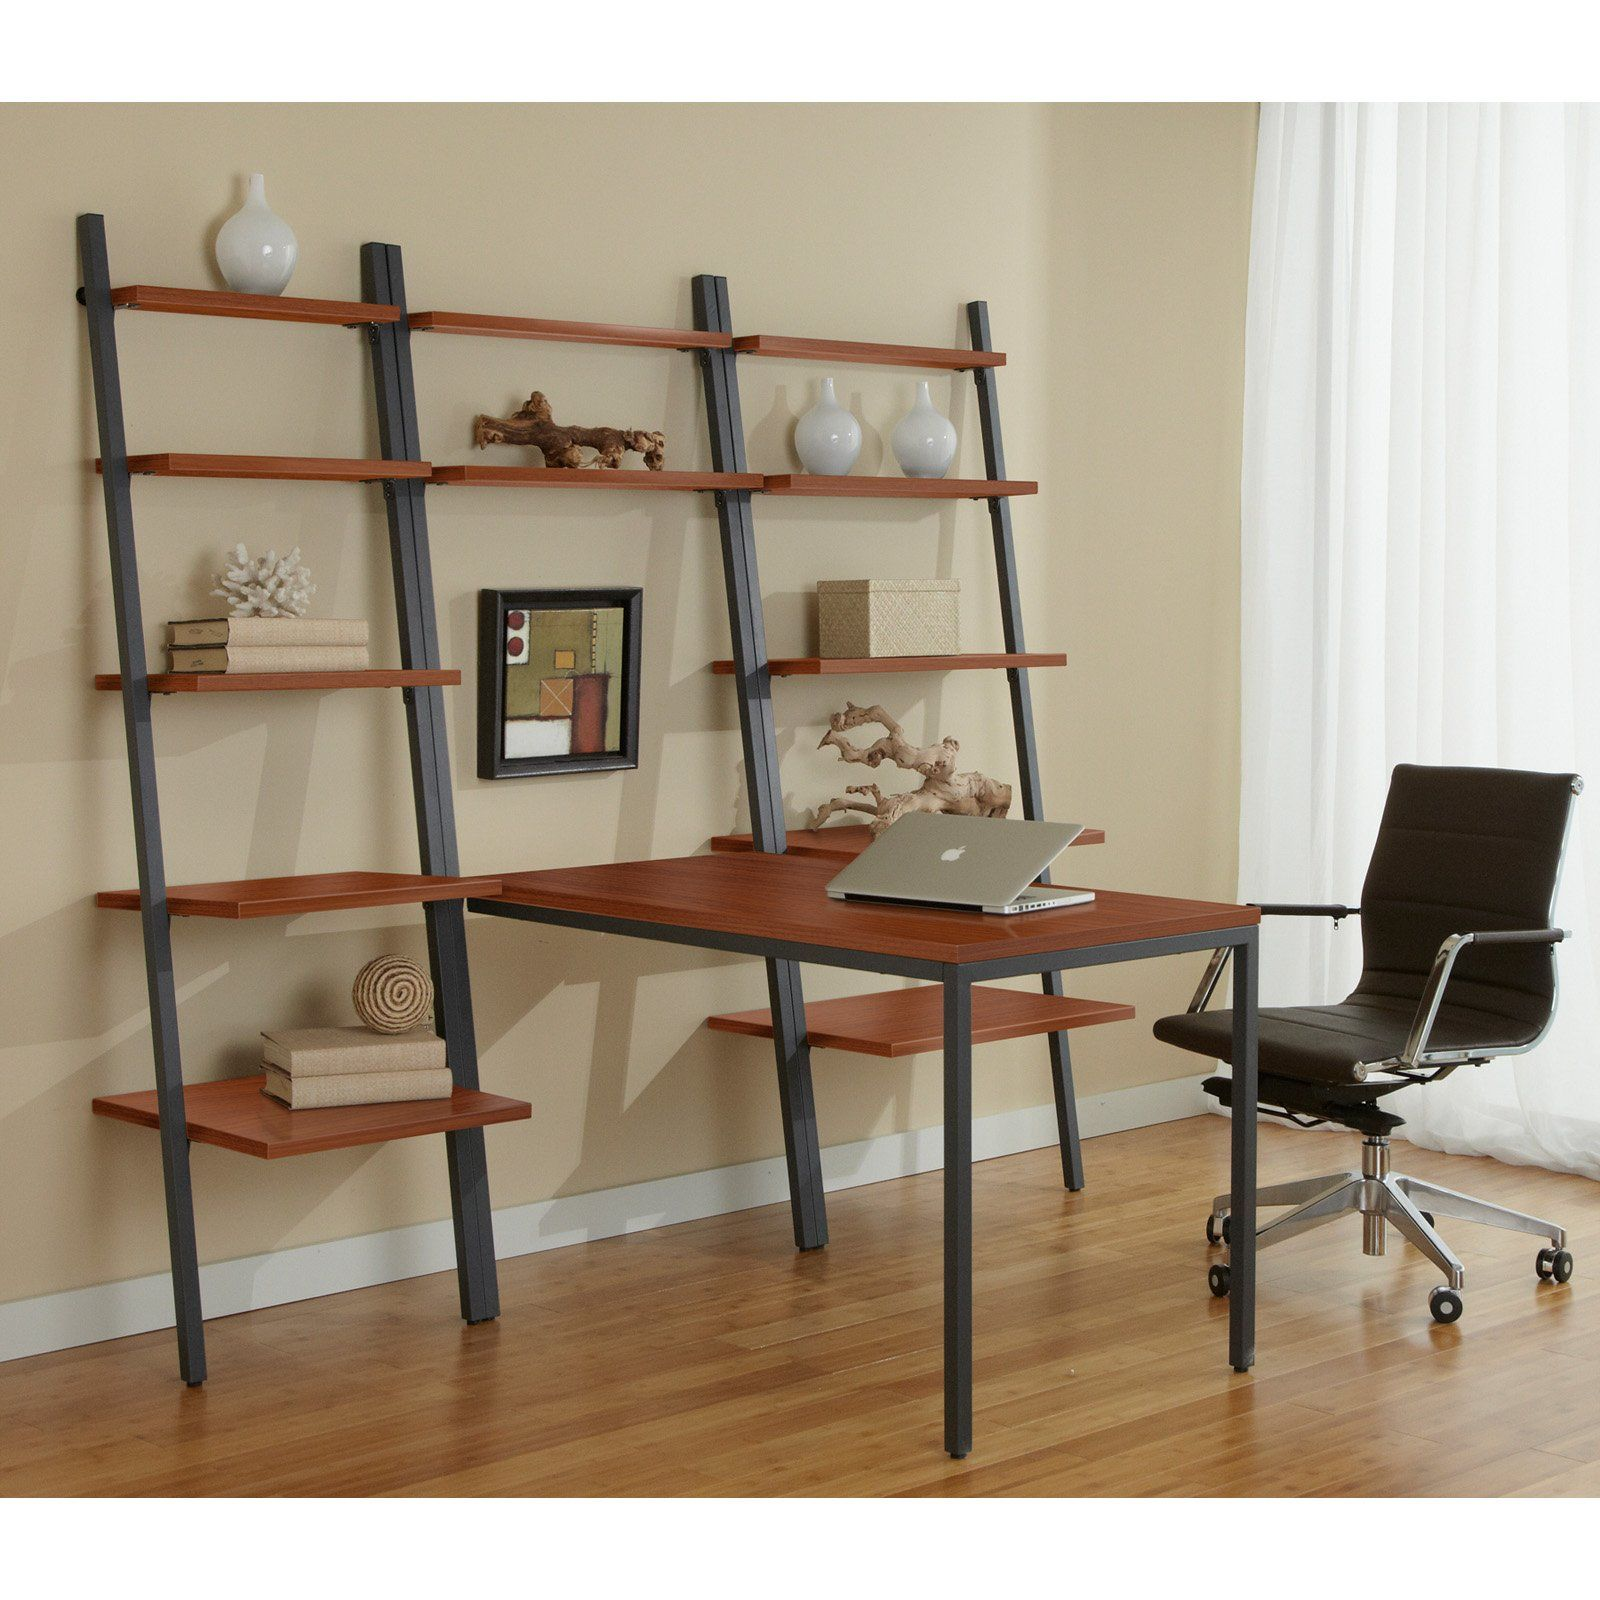 Have to have it jesper parson ladder bookcases with peninsula desk